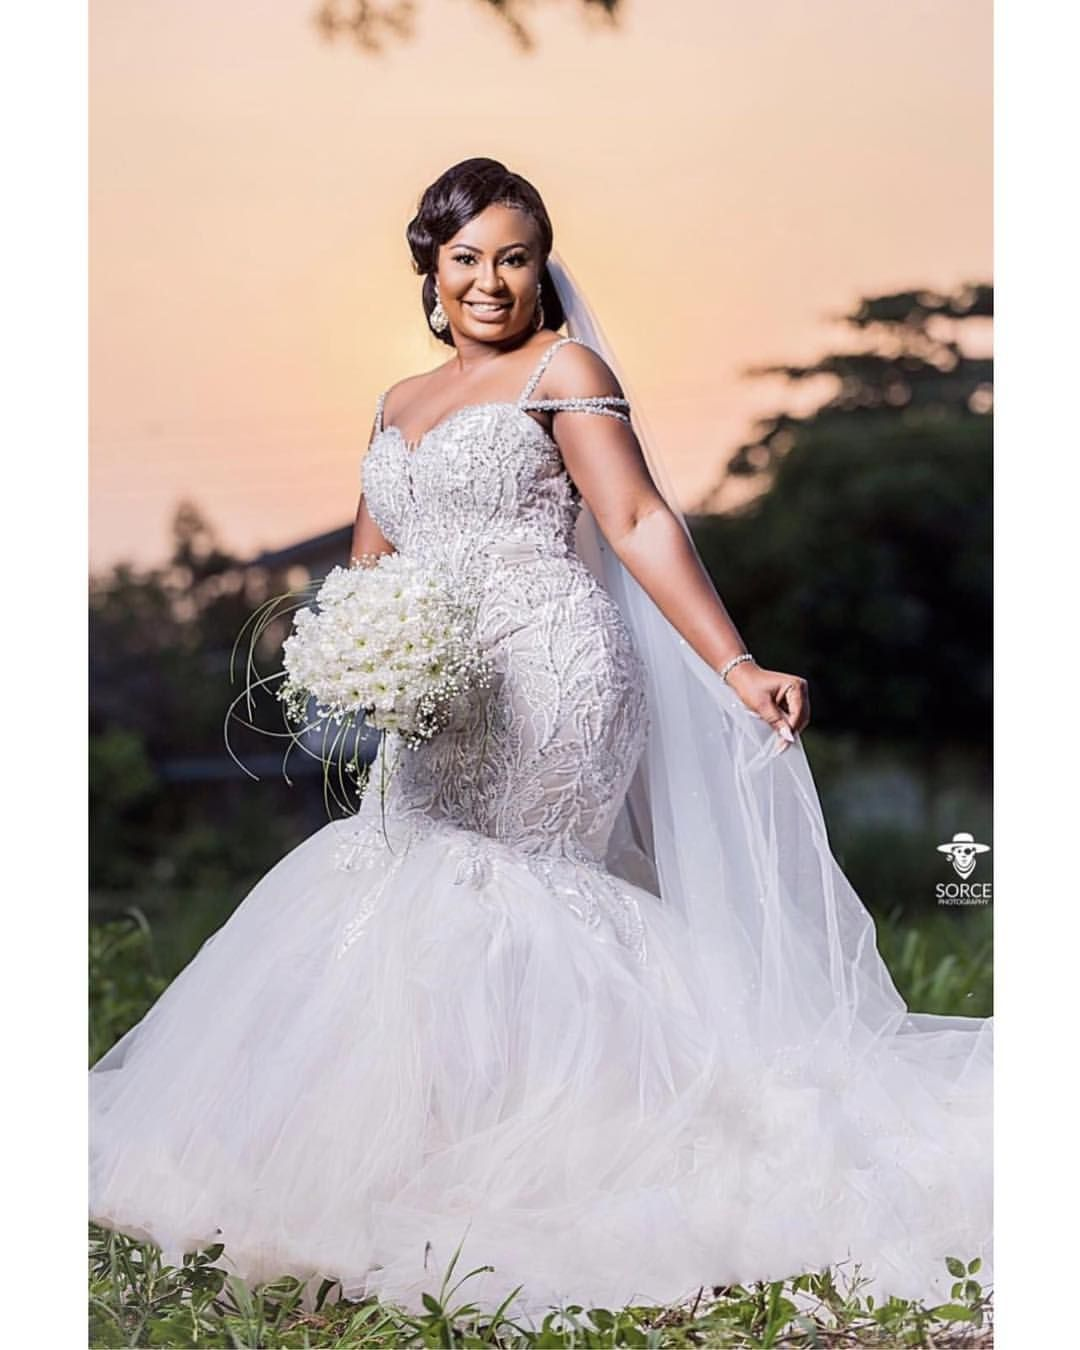 Wedding gowns pictures in nigeria newspapers